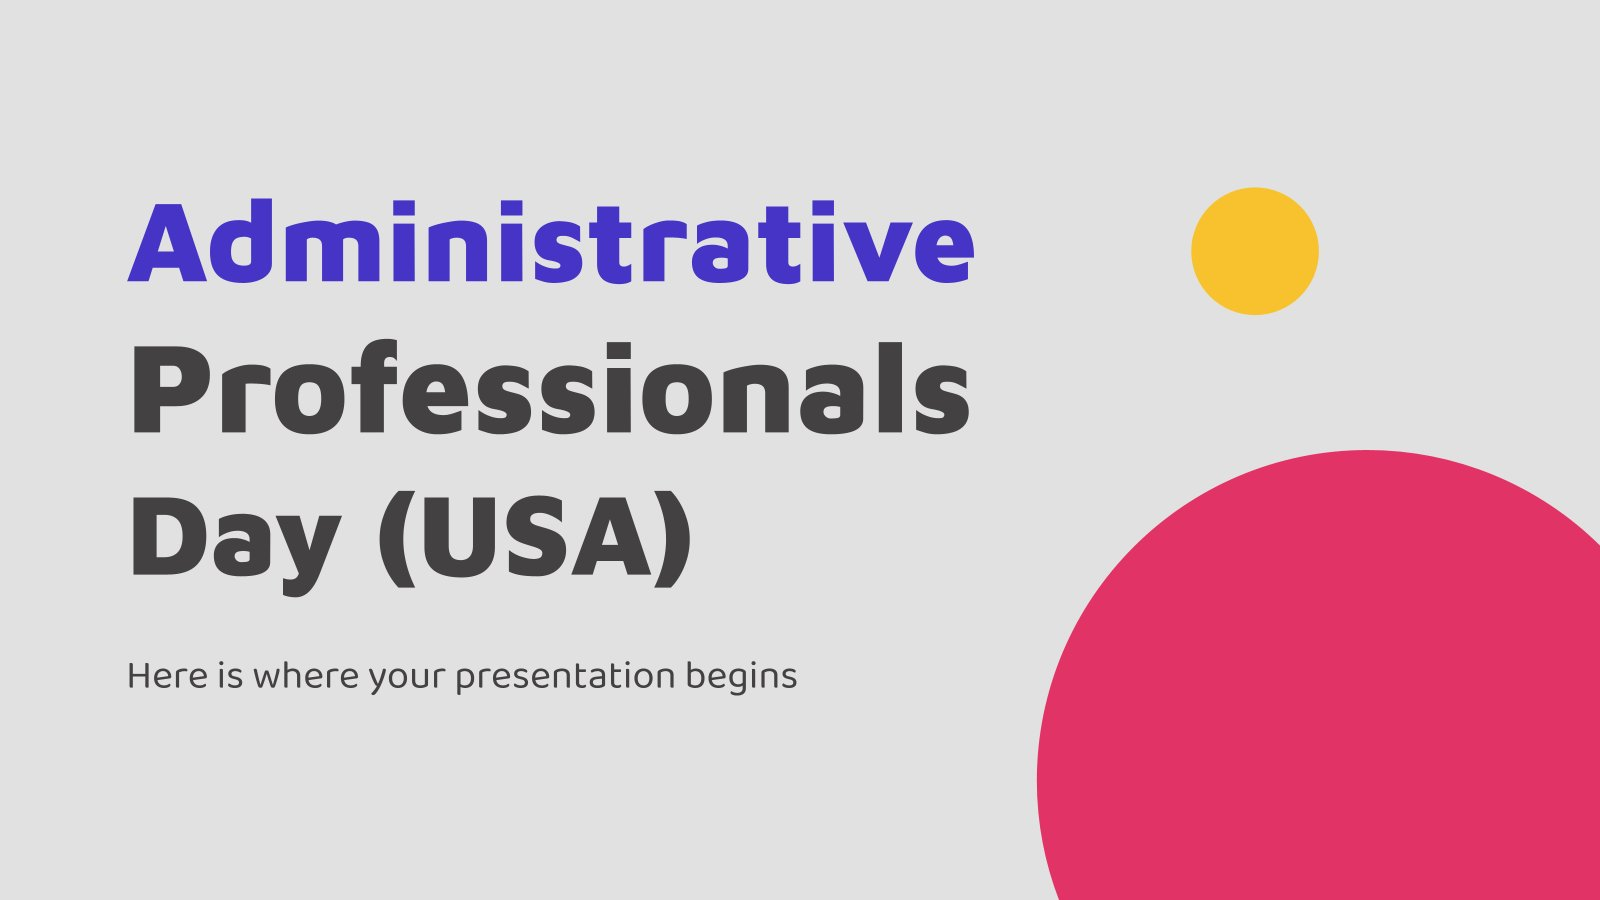 Administrative Professionals Day (USA) presentation template